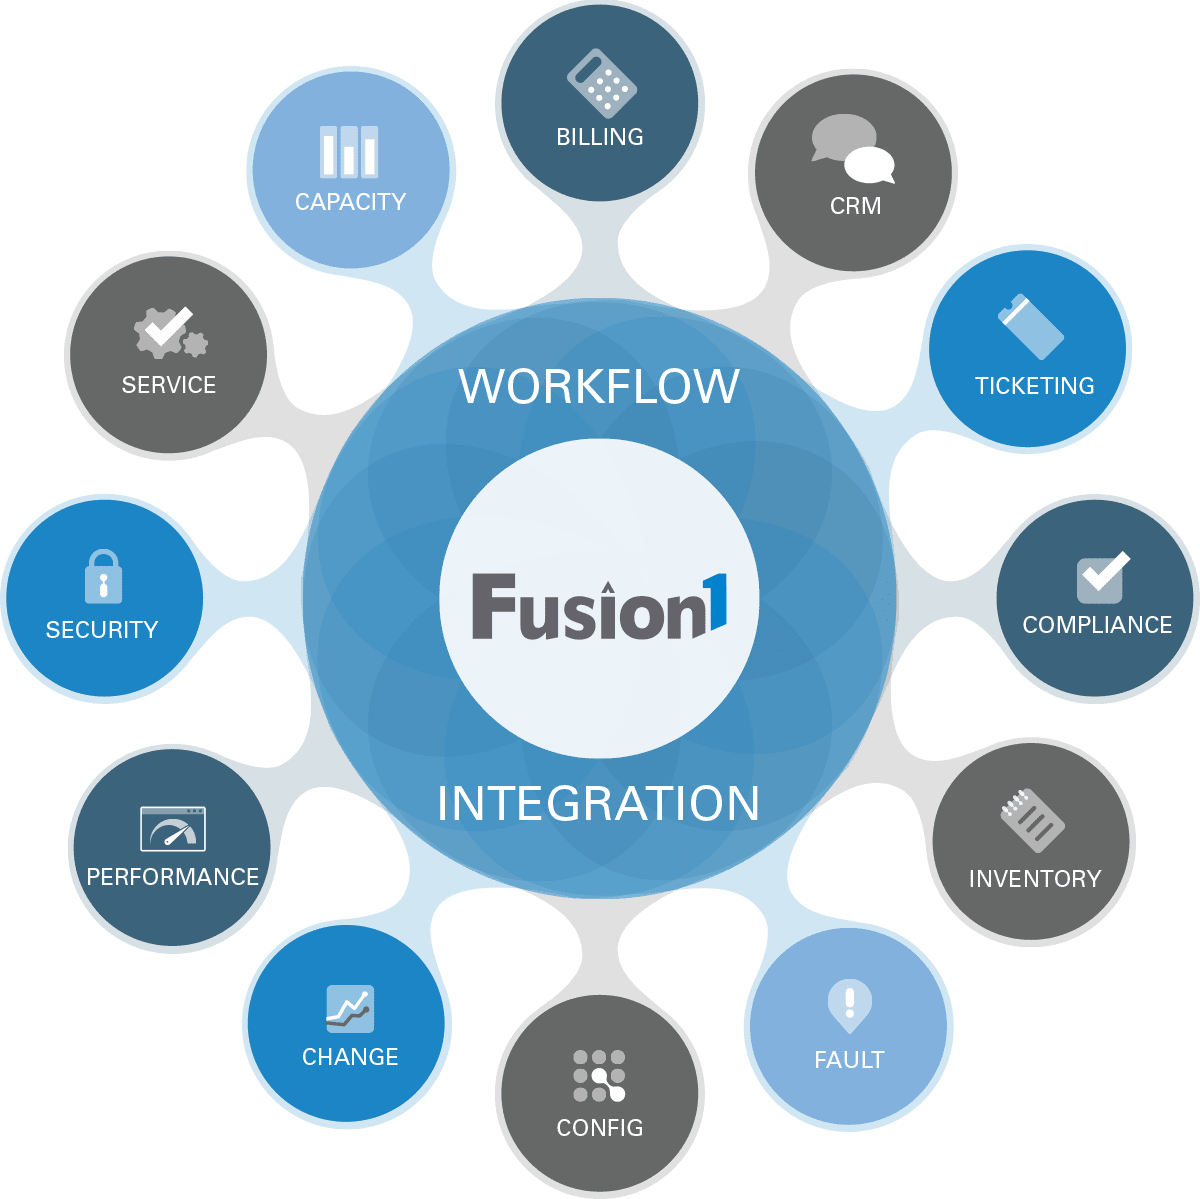 A graphic representation of the Fusion1 process and workflow product application